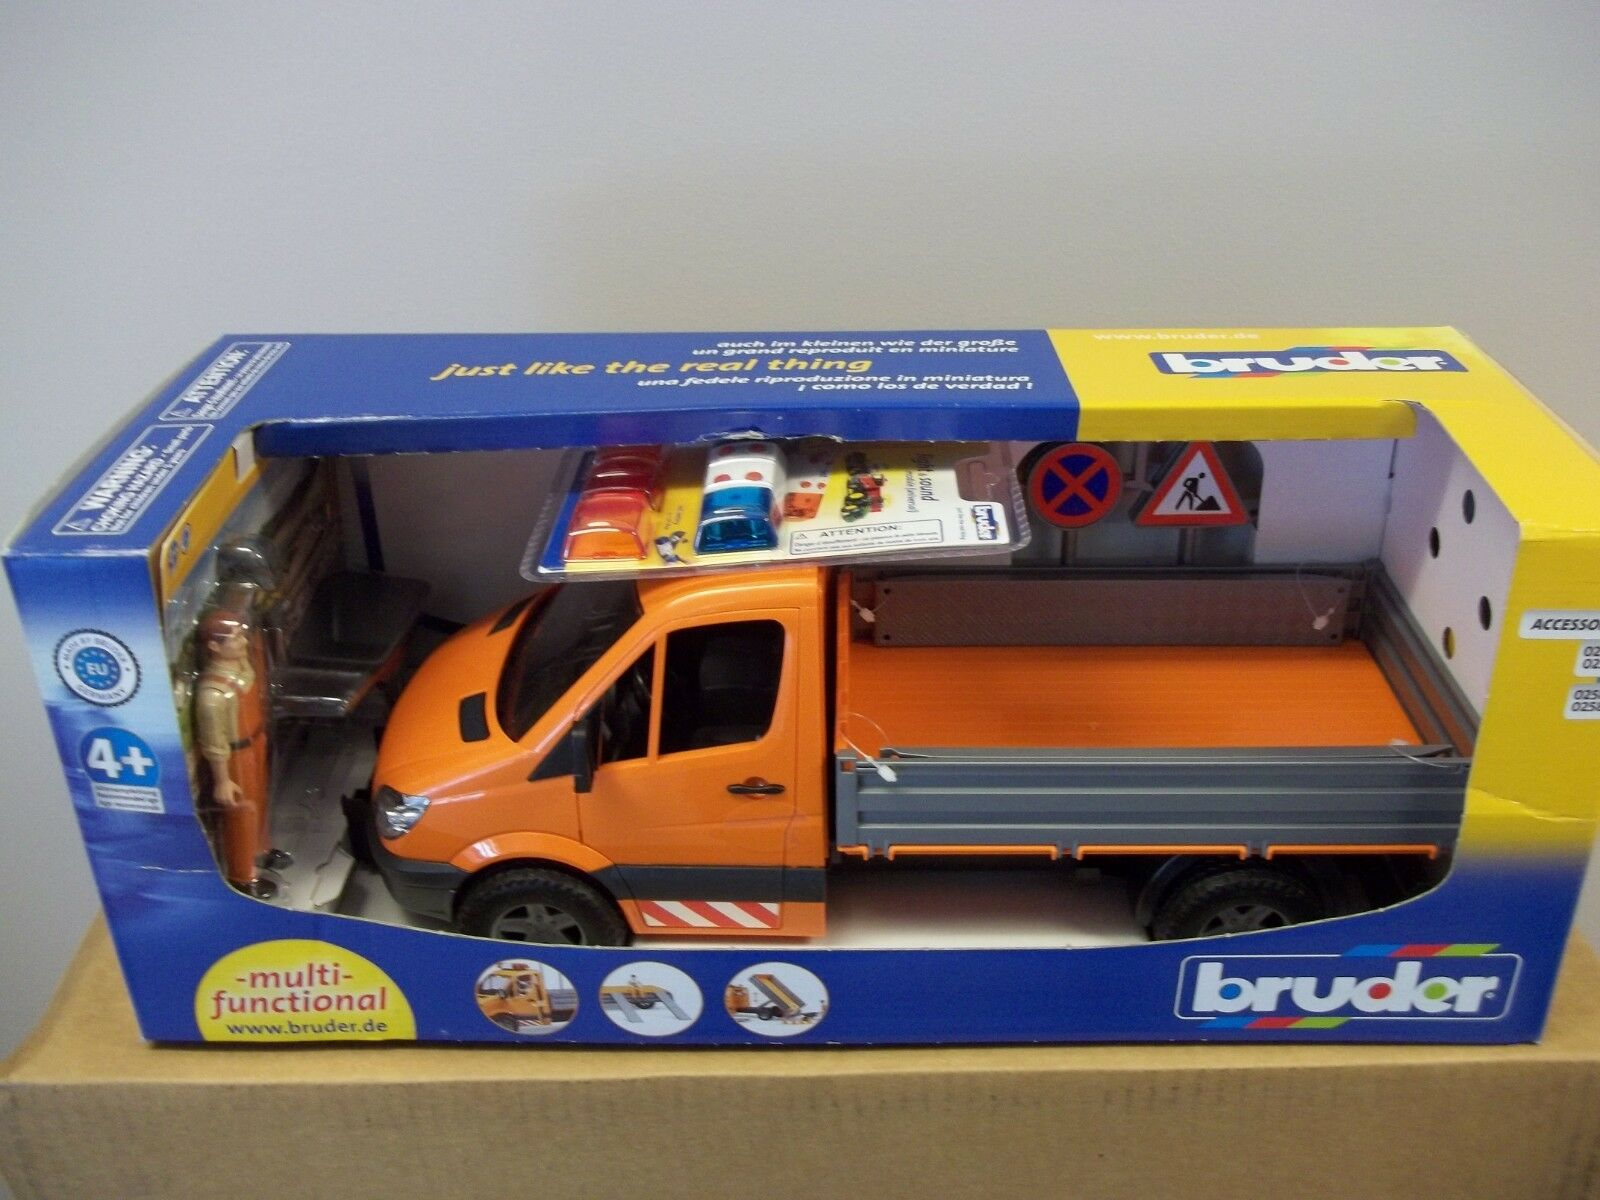 BRUDER MB SPRINTER MUNICIPAL WITH WORKER, LIGHTS AND SOUNDS 2537